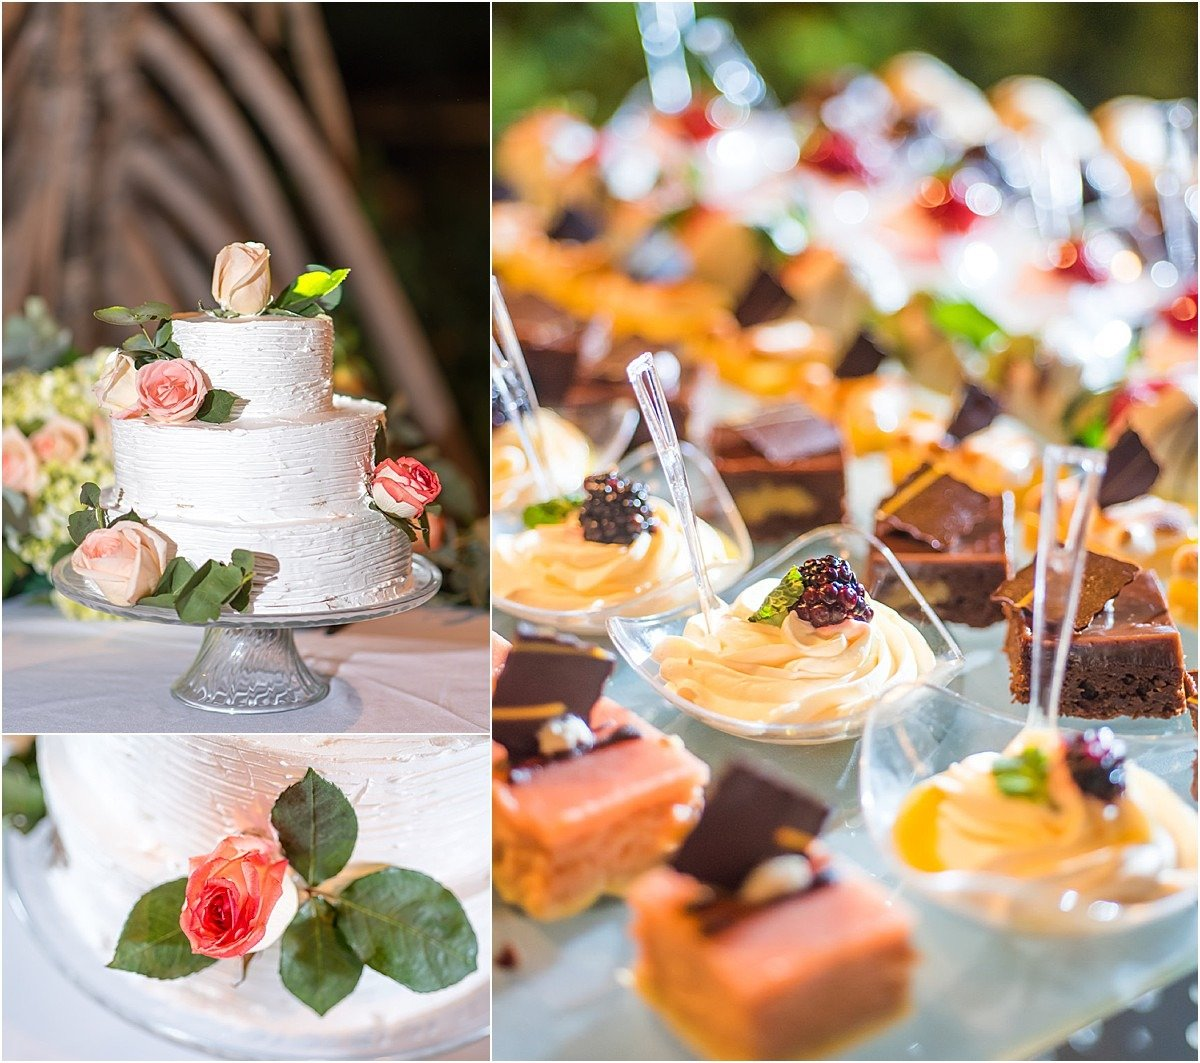 cake catering sweets roses